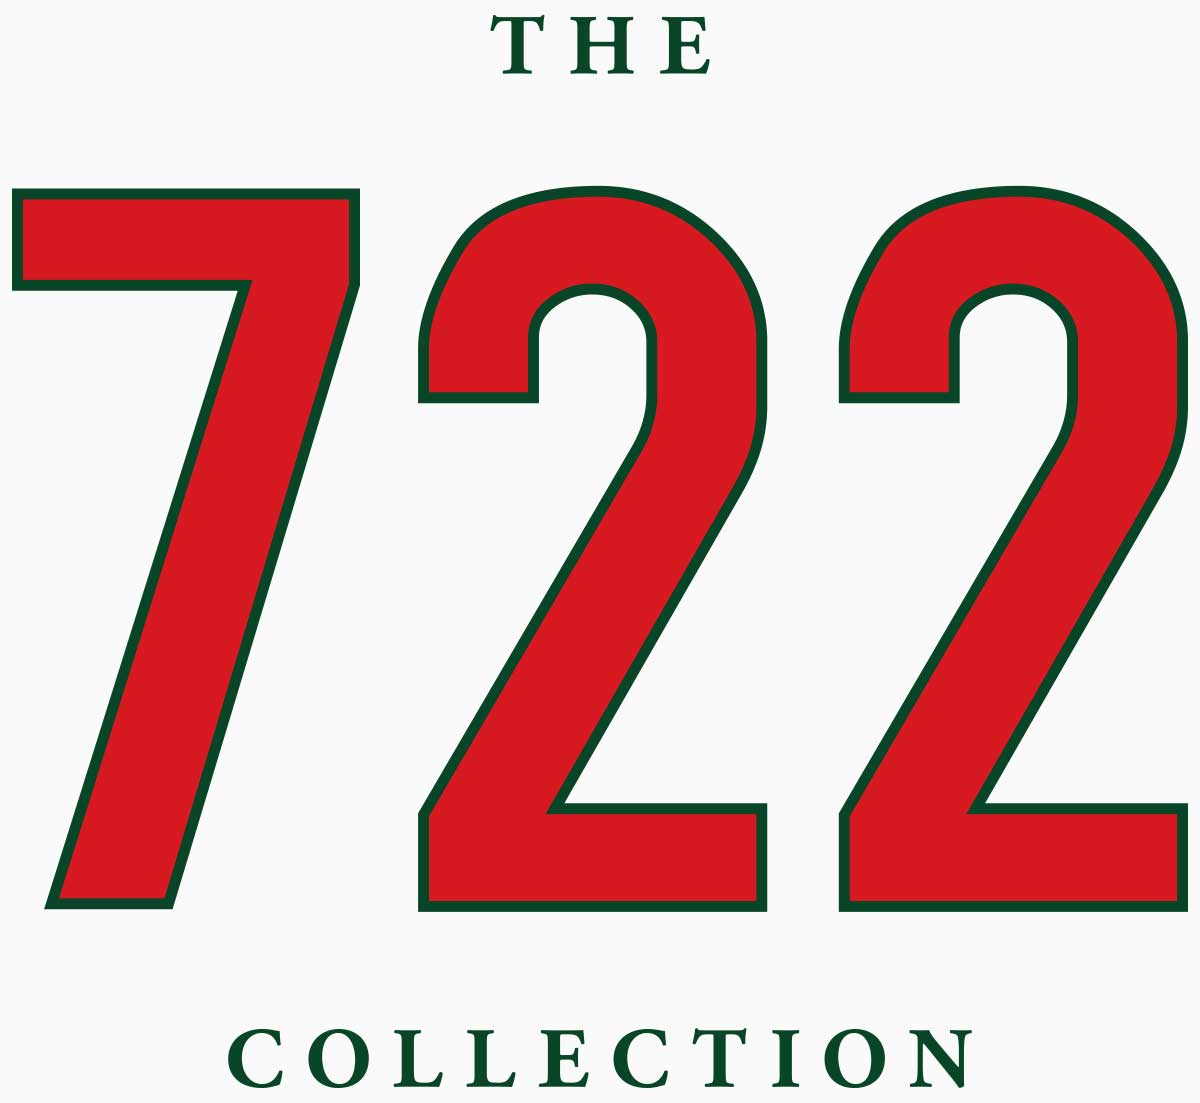 Sir Stirling Moss 722 Collection packaging